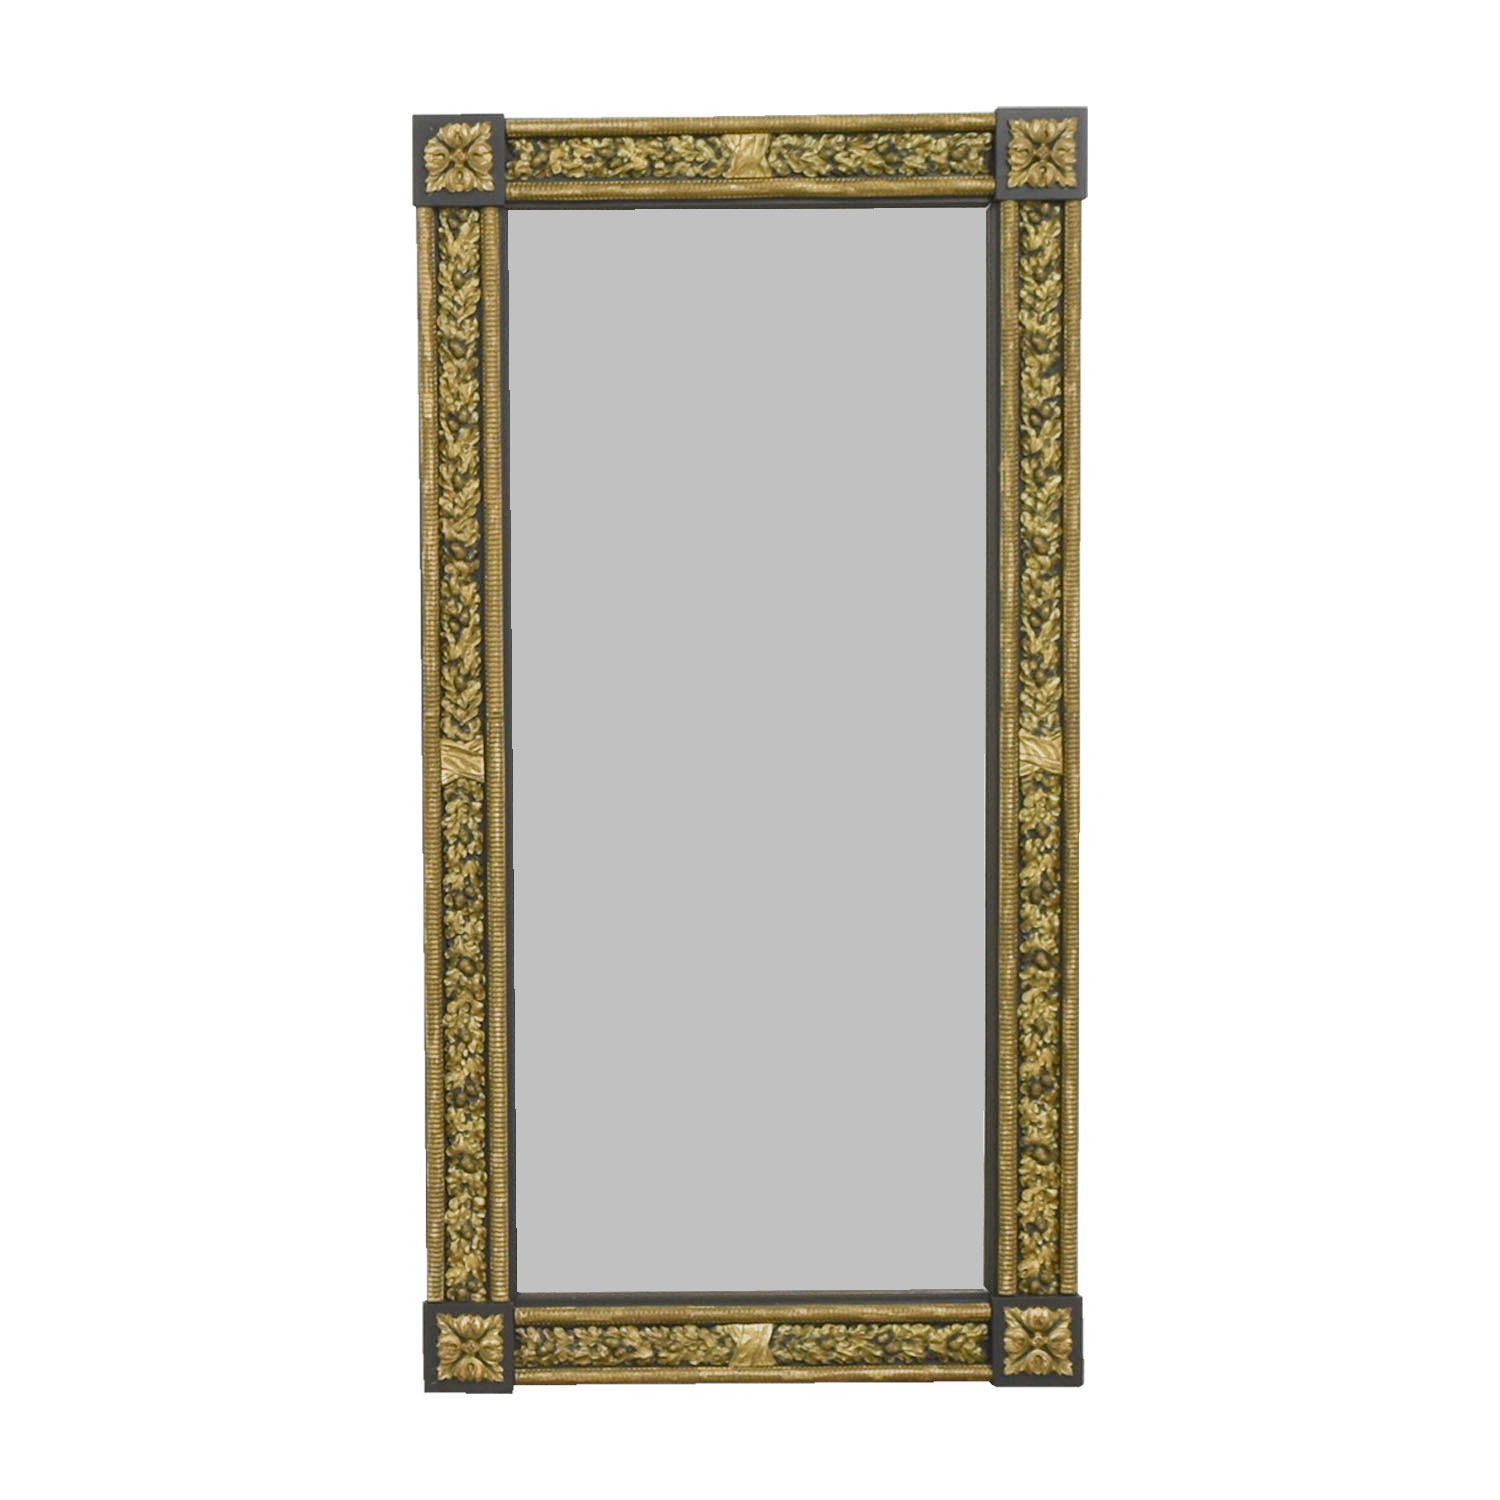 Wall Mirror Decor 84 Off Gold And Silver Framed Wall Mirror Decor